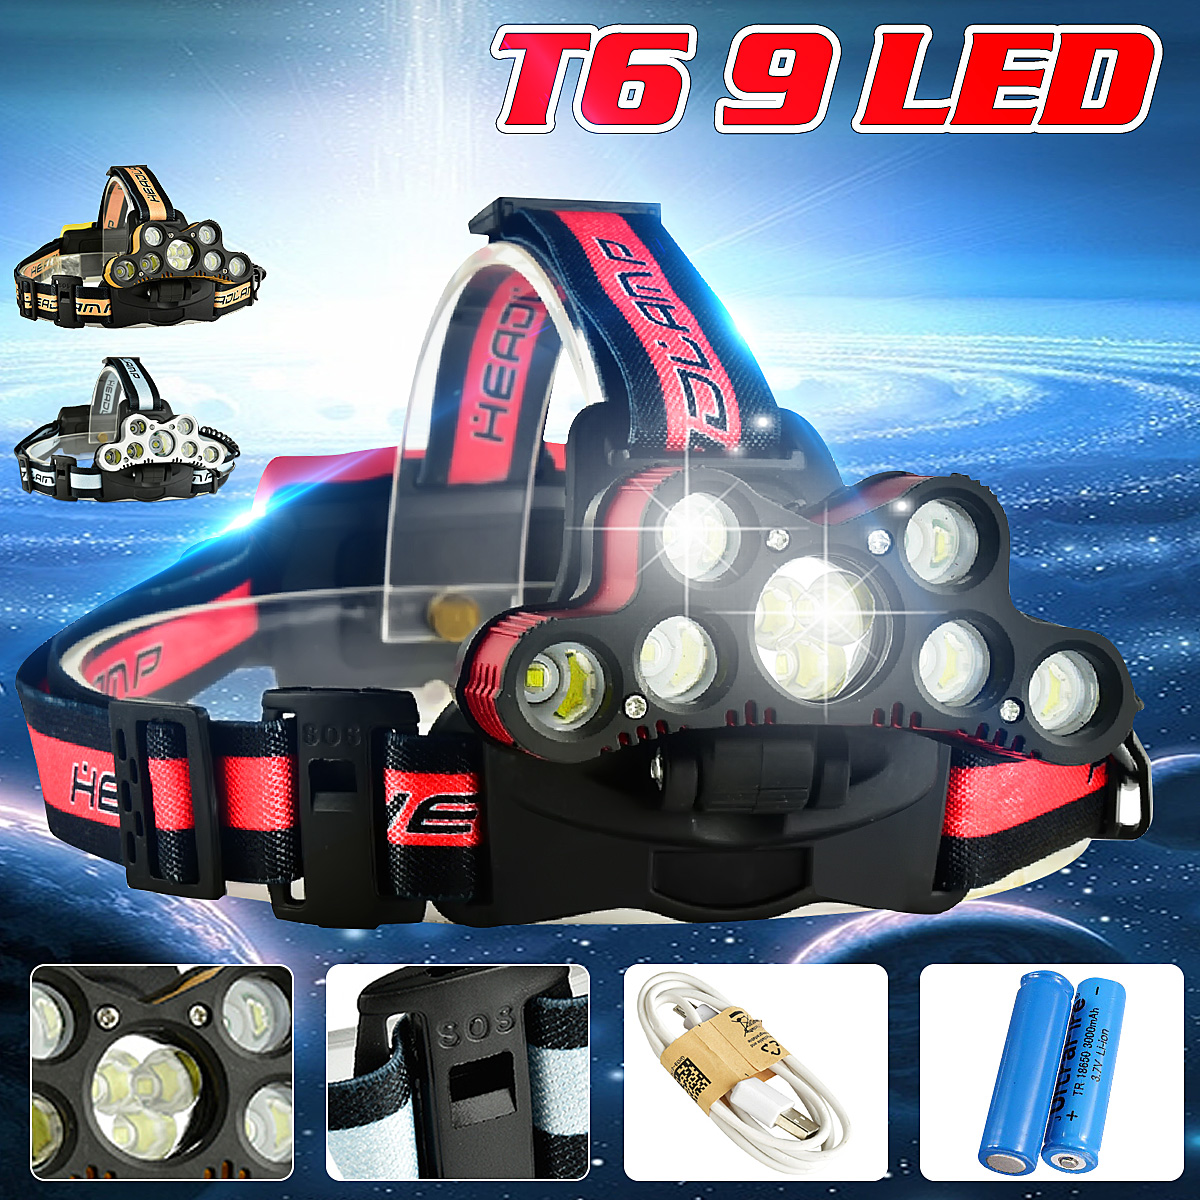 7000LM 9 T6 LED Headlamp USB Rechargeable 18650 Zoomable Headlight Torch Lamp + 2Pcs 18650 Flashlight Battery + USB Cable -SO S Help whistle